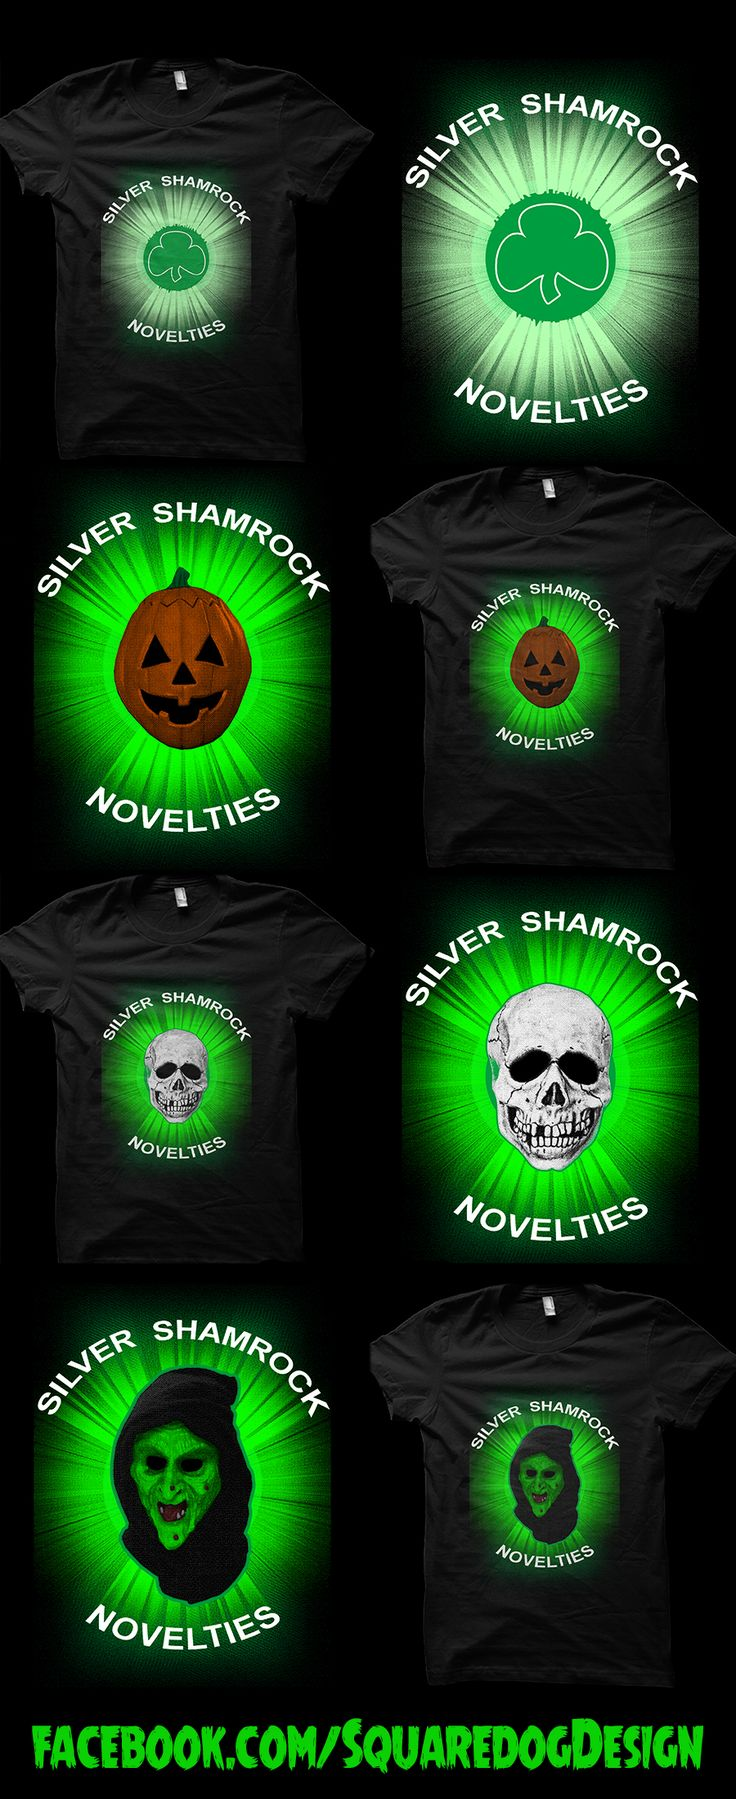 Cheesy 80s Halloween Horror? Surely that's the best kind! Available at a discount for a limited time! Silver Shamrock- https://www.teepublic.com/t-shirt/716870-silver-shamrock Silver Shamrock Pumpkin Head- https://www.teepublic.com/t-shirt/716881-silver-shamrock-pumpkin-head Silver Shamrock Skull- https://www.teepublic.com/t-shirt/716888-silver-shamrock-skull Silver Shamrock Witch- https://www.teepublic.com/t-shirt/716892-silver-shamrock-witch #Halloween #SilverShamrockNovelties #HorrorFan